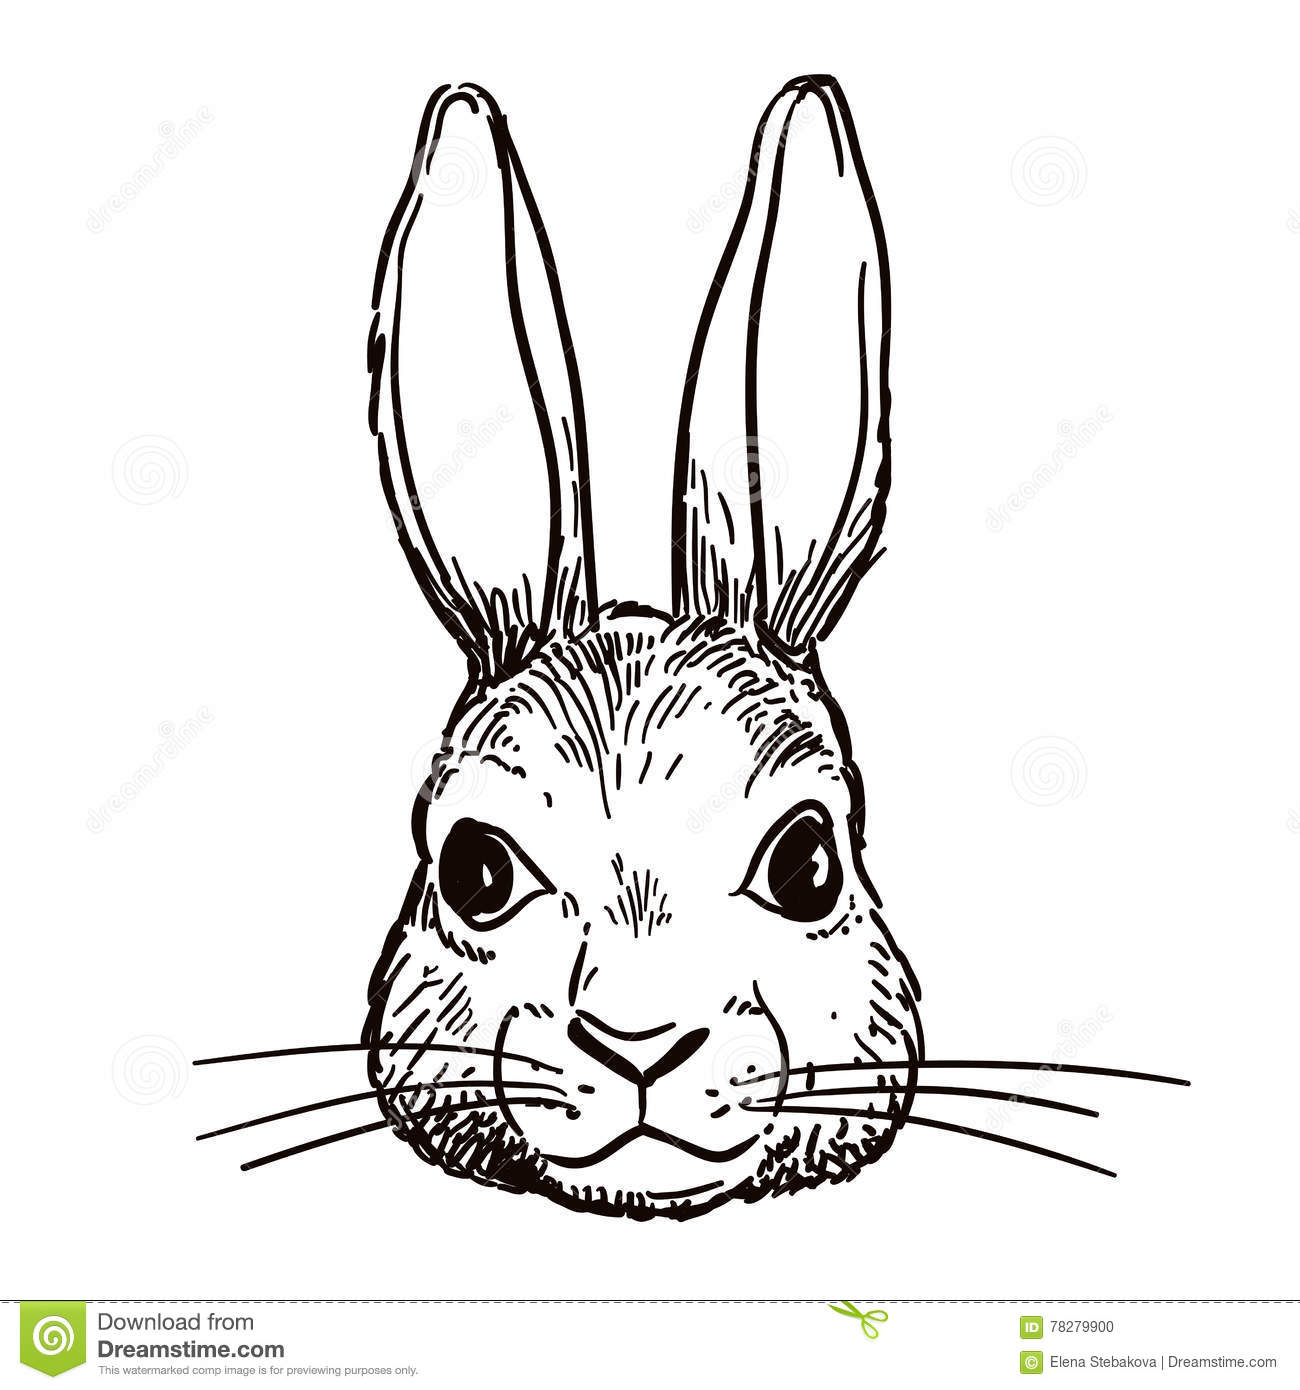 Bunny Face Line Drawing : Pen and ink rabbit head sketch stock vector illustration